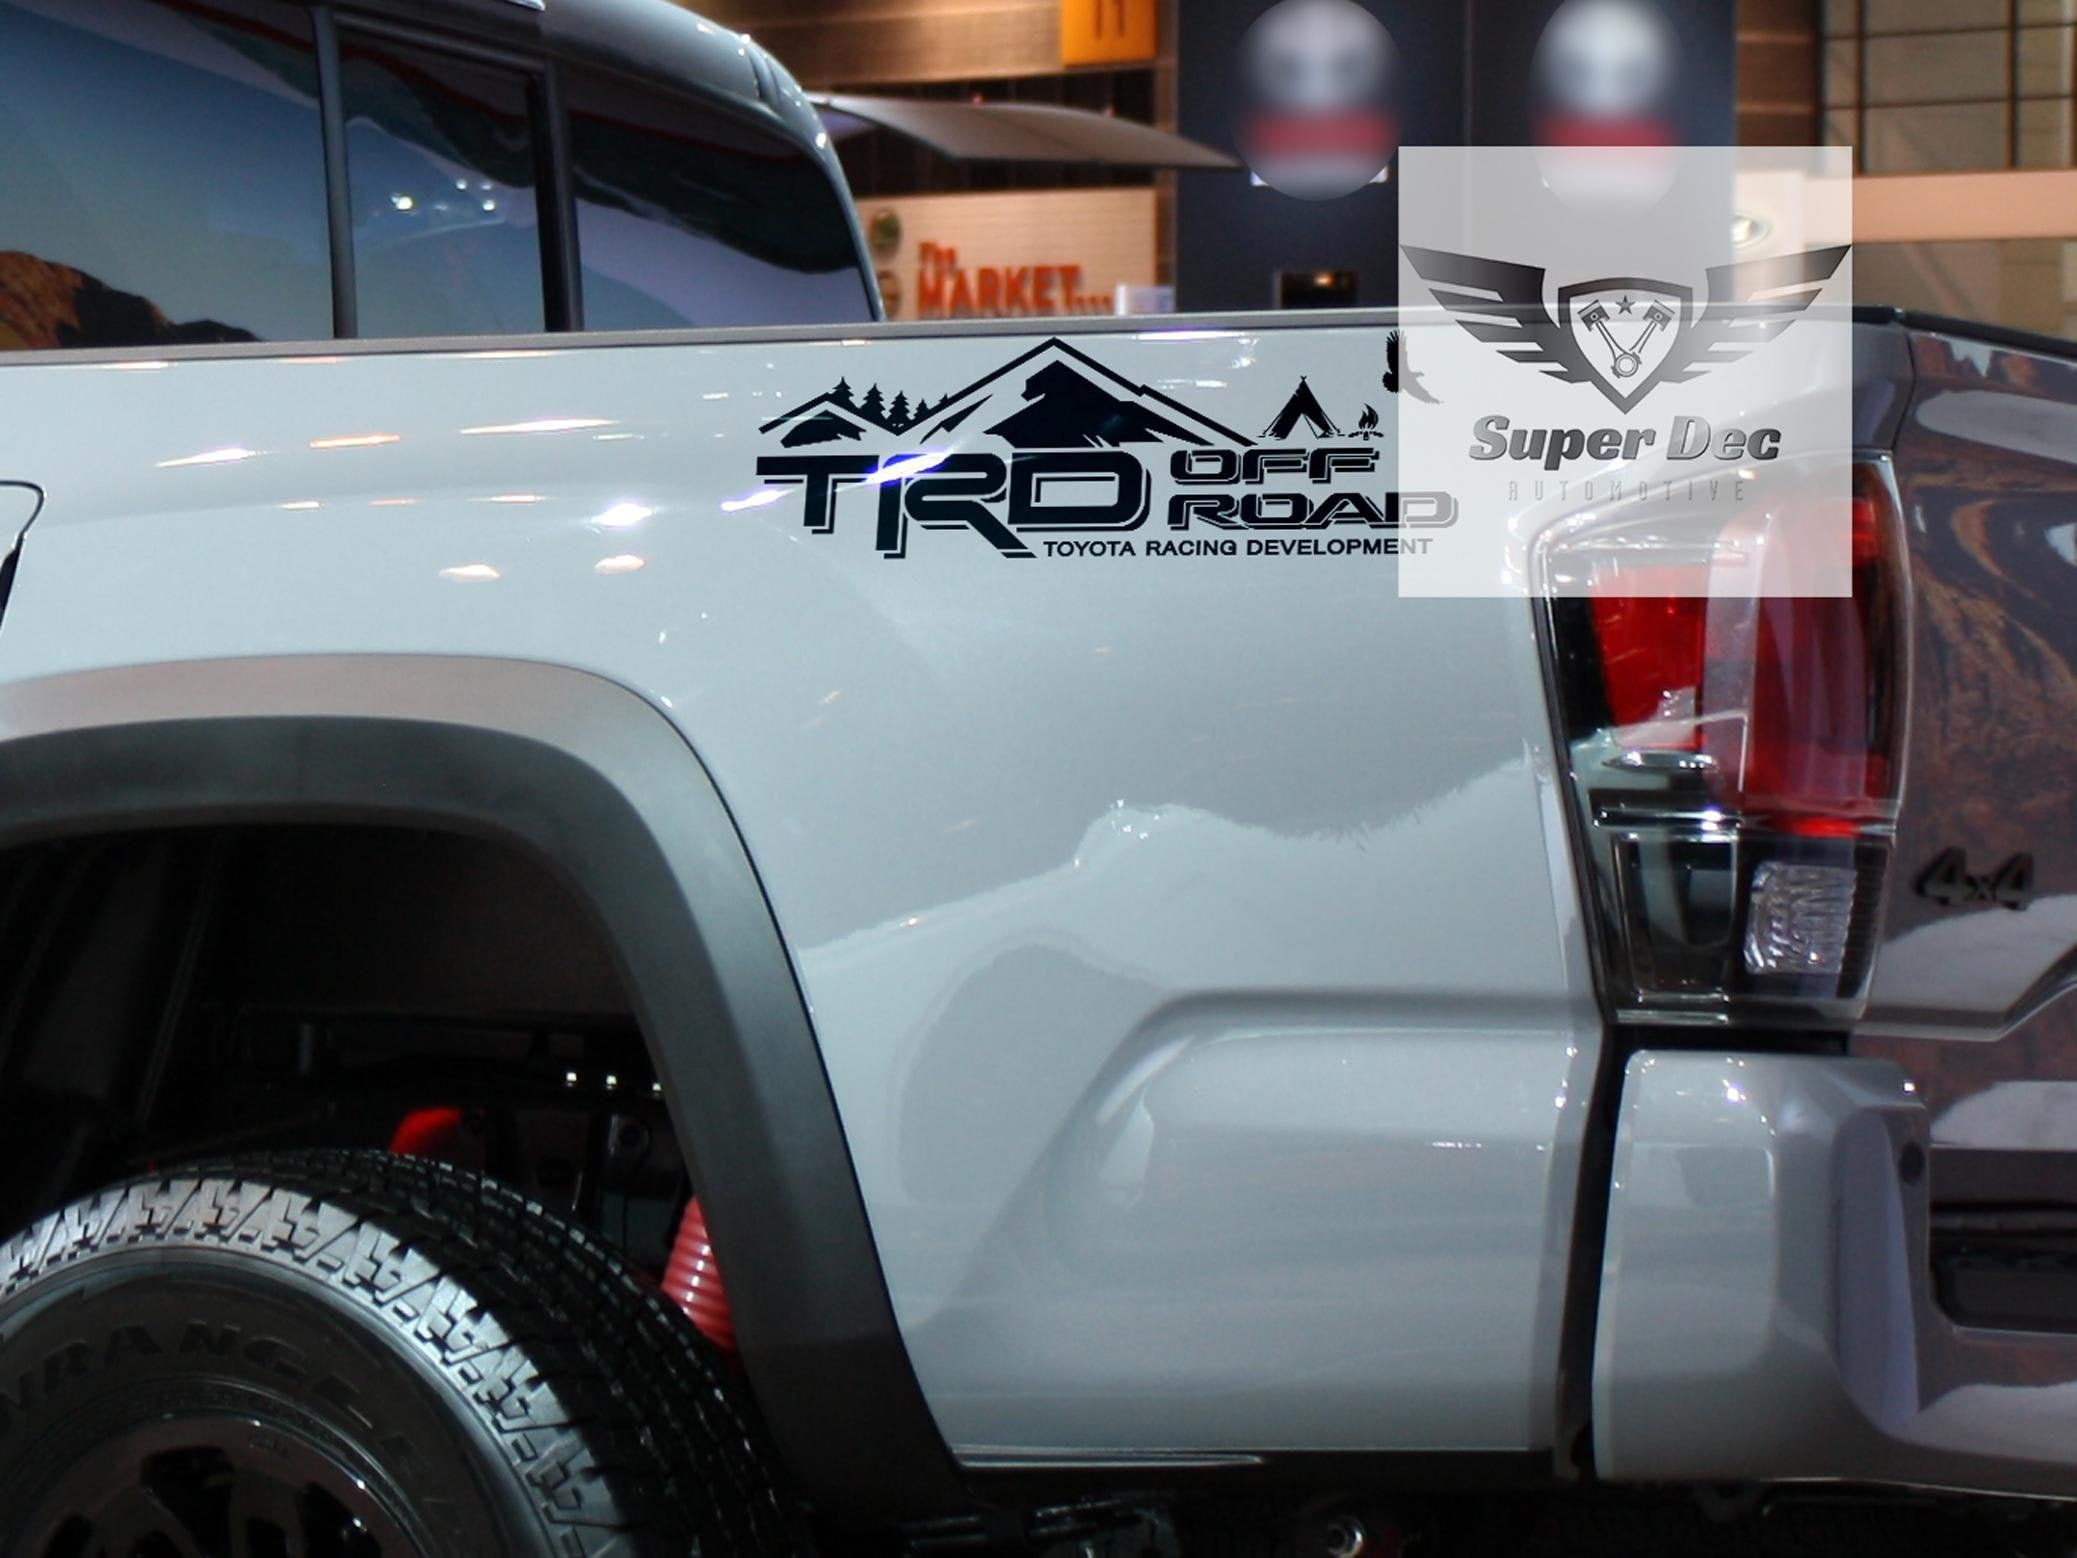 Camp Edition Trd Mountains Forest Off Road Pro Sport 4x4 Tacoma Tundra Fj Cruiser Sticker Decal Fj Cruiser New Sports Cars Trd [ jpg ]